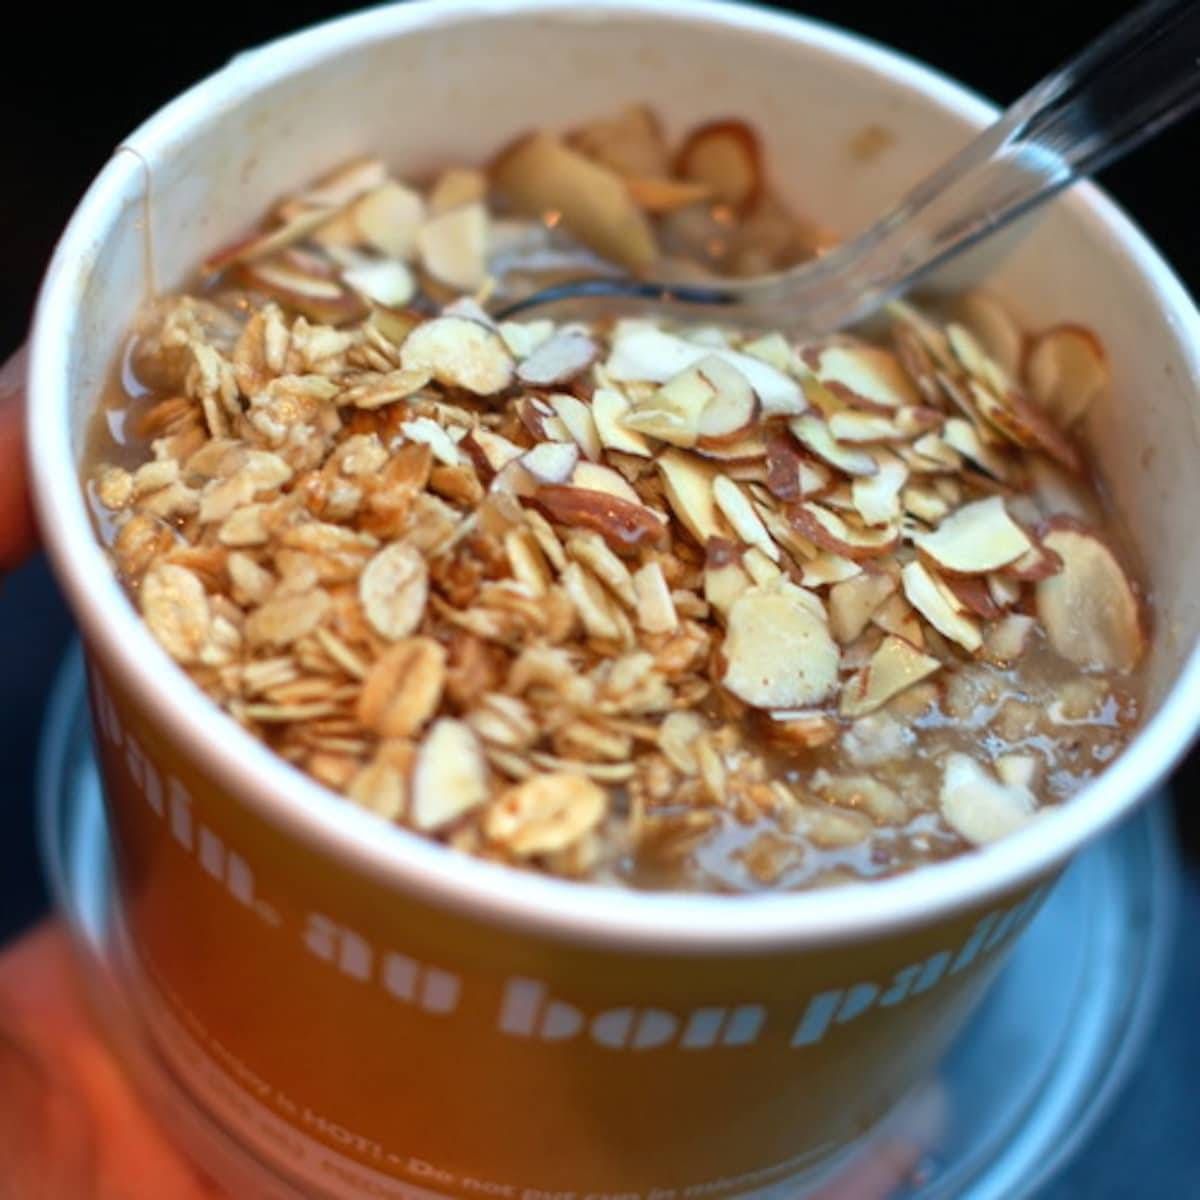 These peanut butter banana power oats are packed with protein and fiber for a healthy start to your day! Quick, easy, and peanut butter delicious. | pinchofyum.com